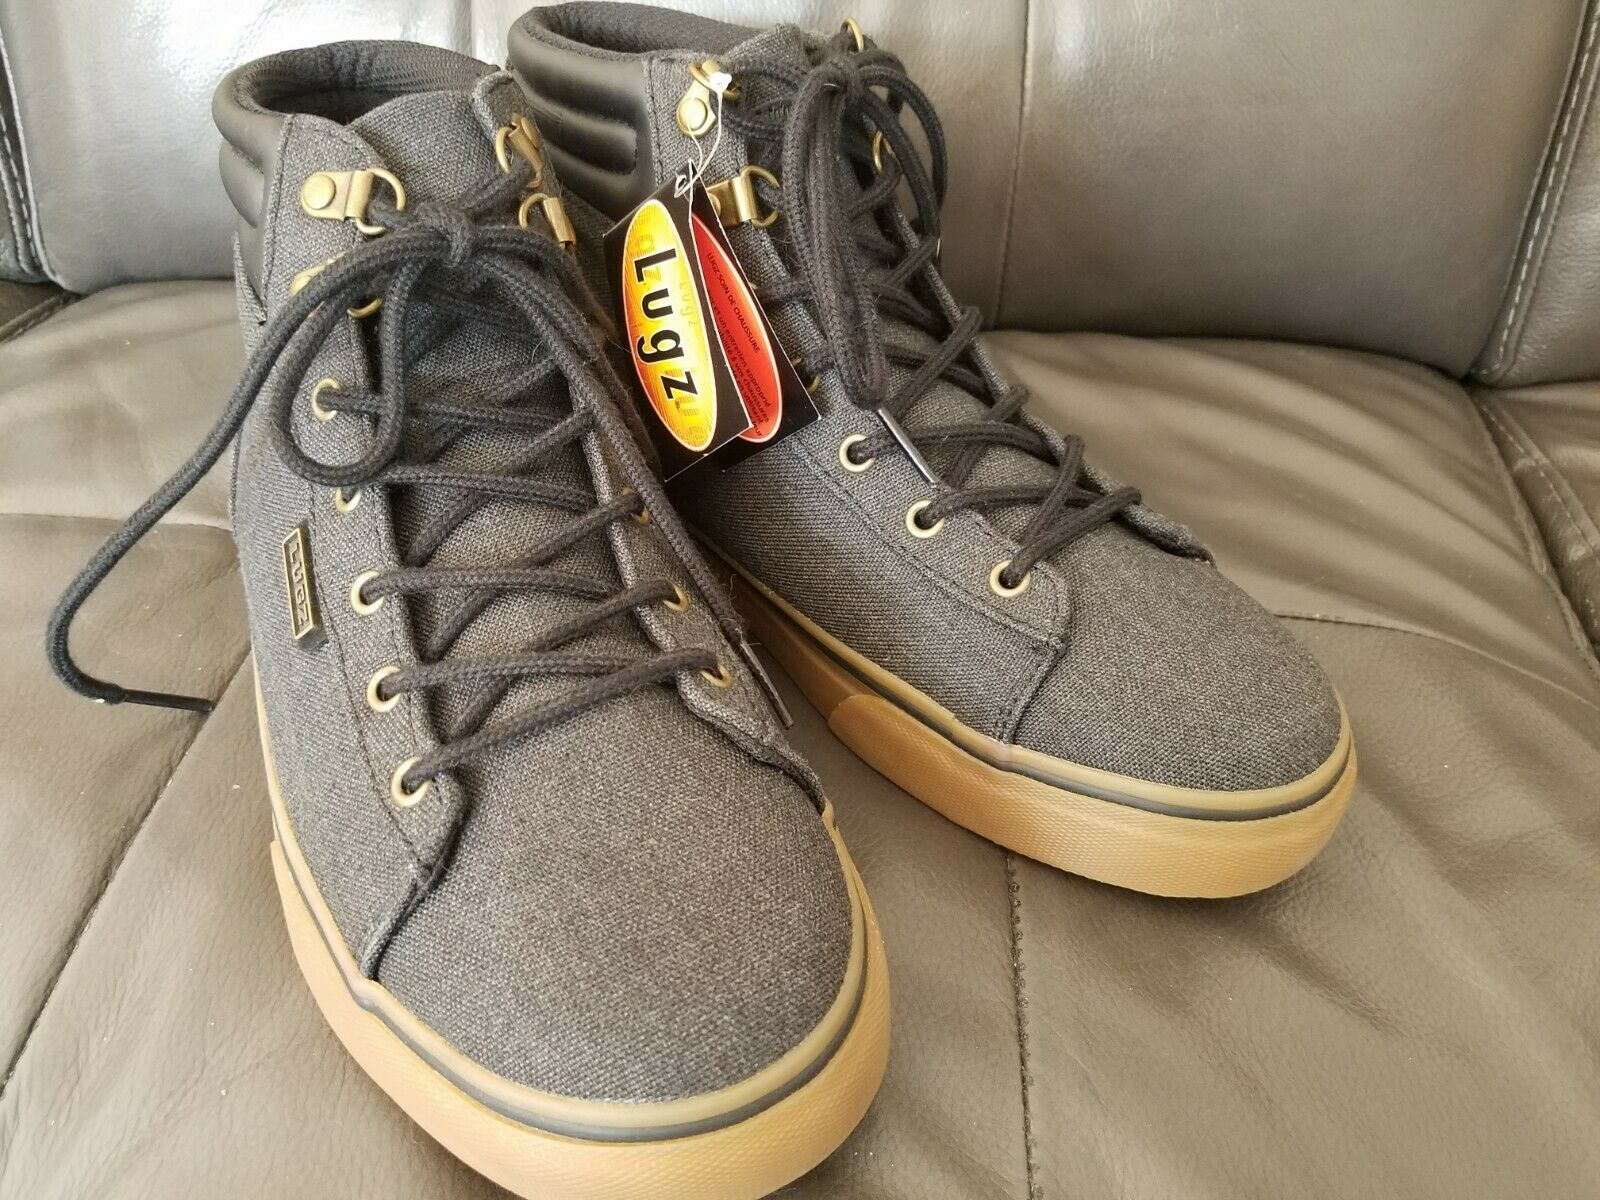 NEW LUGZ High Top Lace up Sneakers Men's Shoes Size 8.5 Gray MALLTC-002